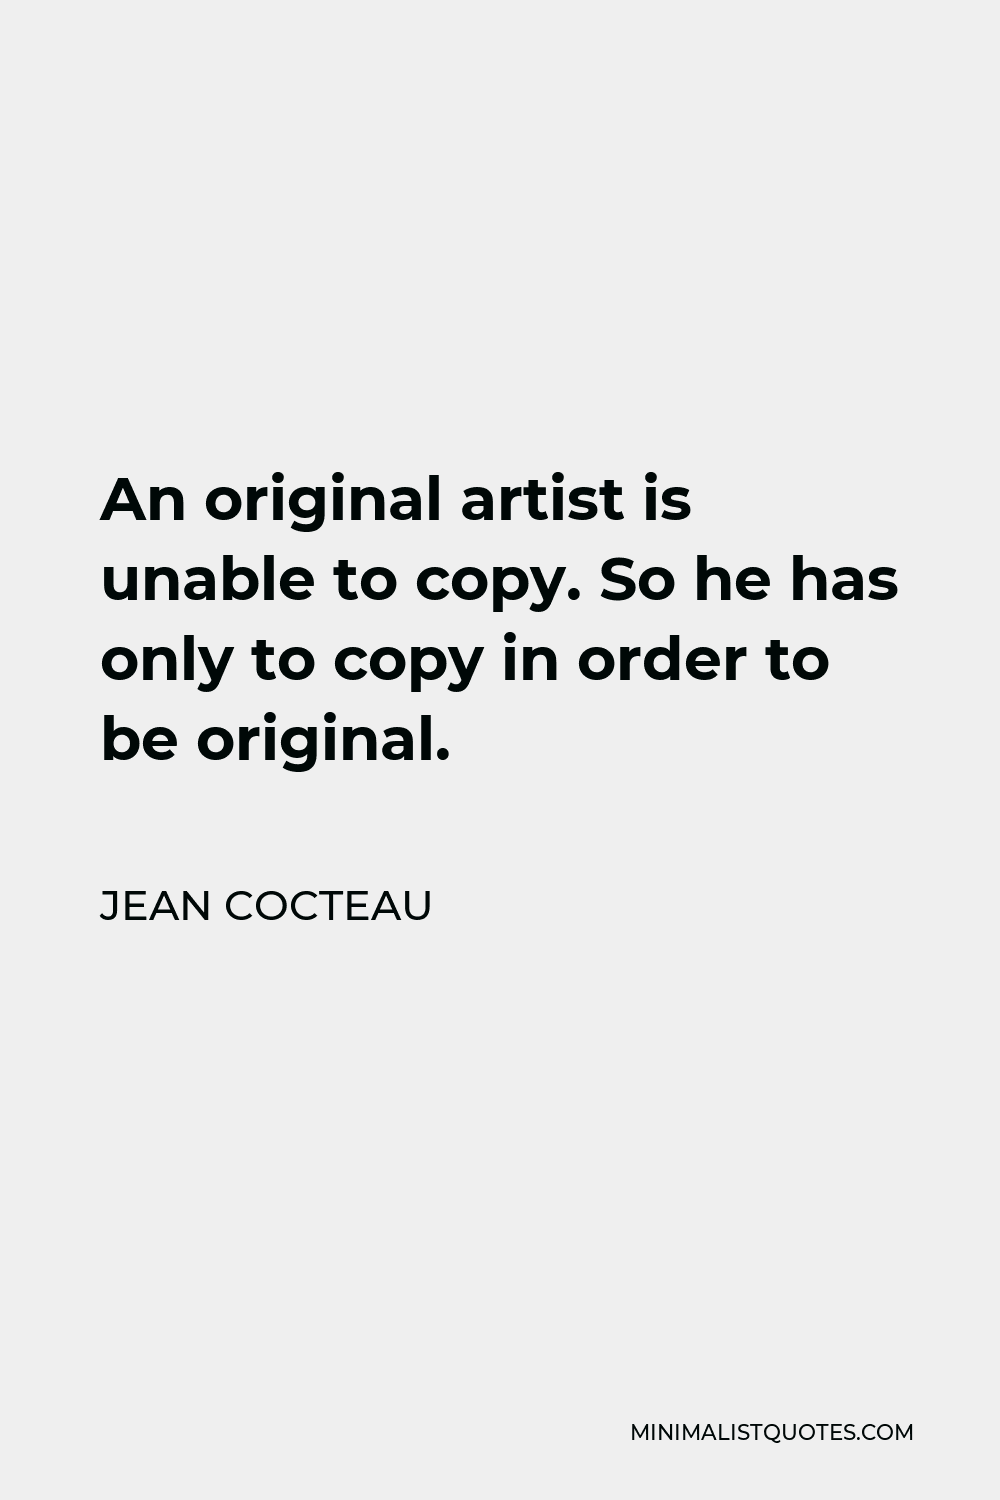 Jean Cocteau Quote - An original artist is unable to copy. So he has only to copy in order to be original.